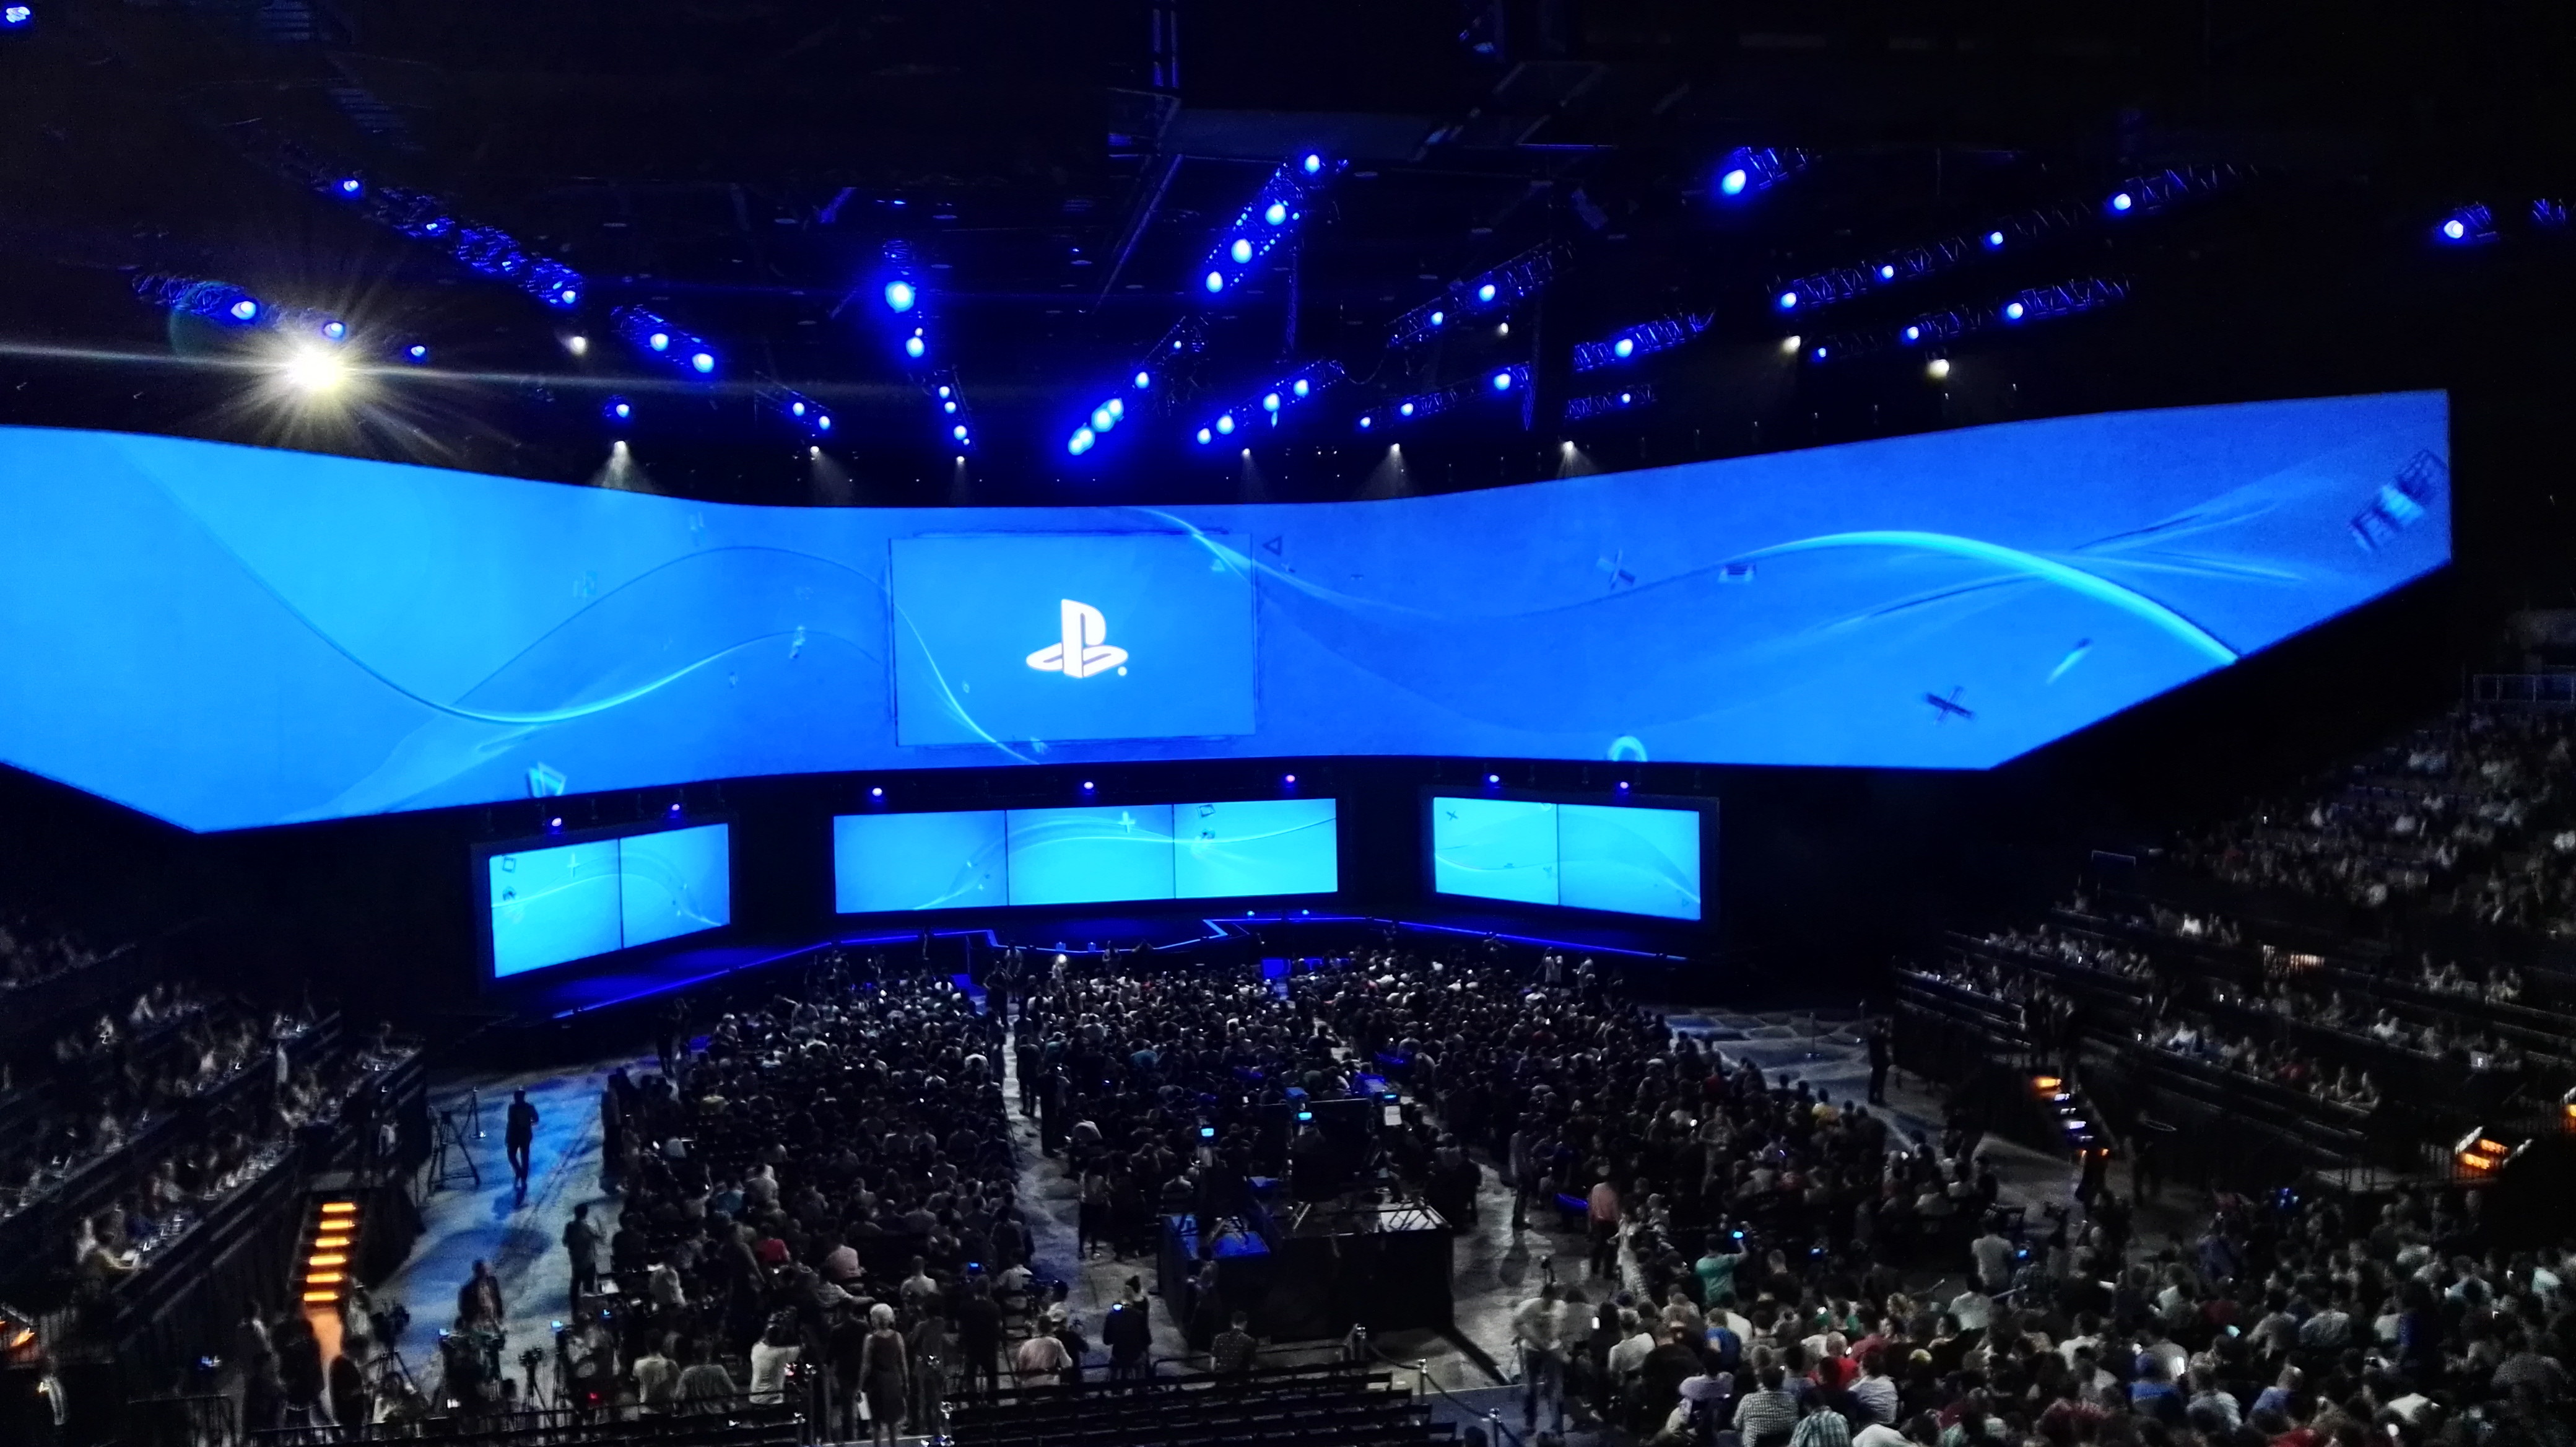 IMG 20150616 123855 Report Suggests Two New PS4 Models Being Unveiled In September